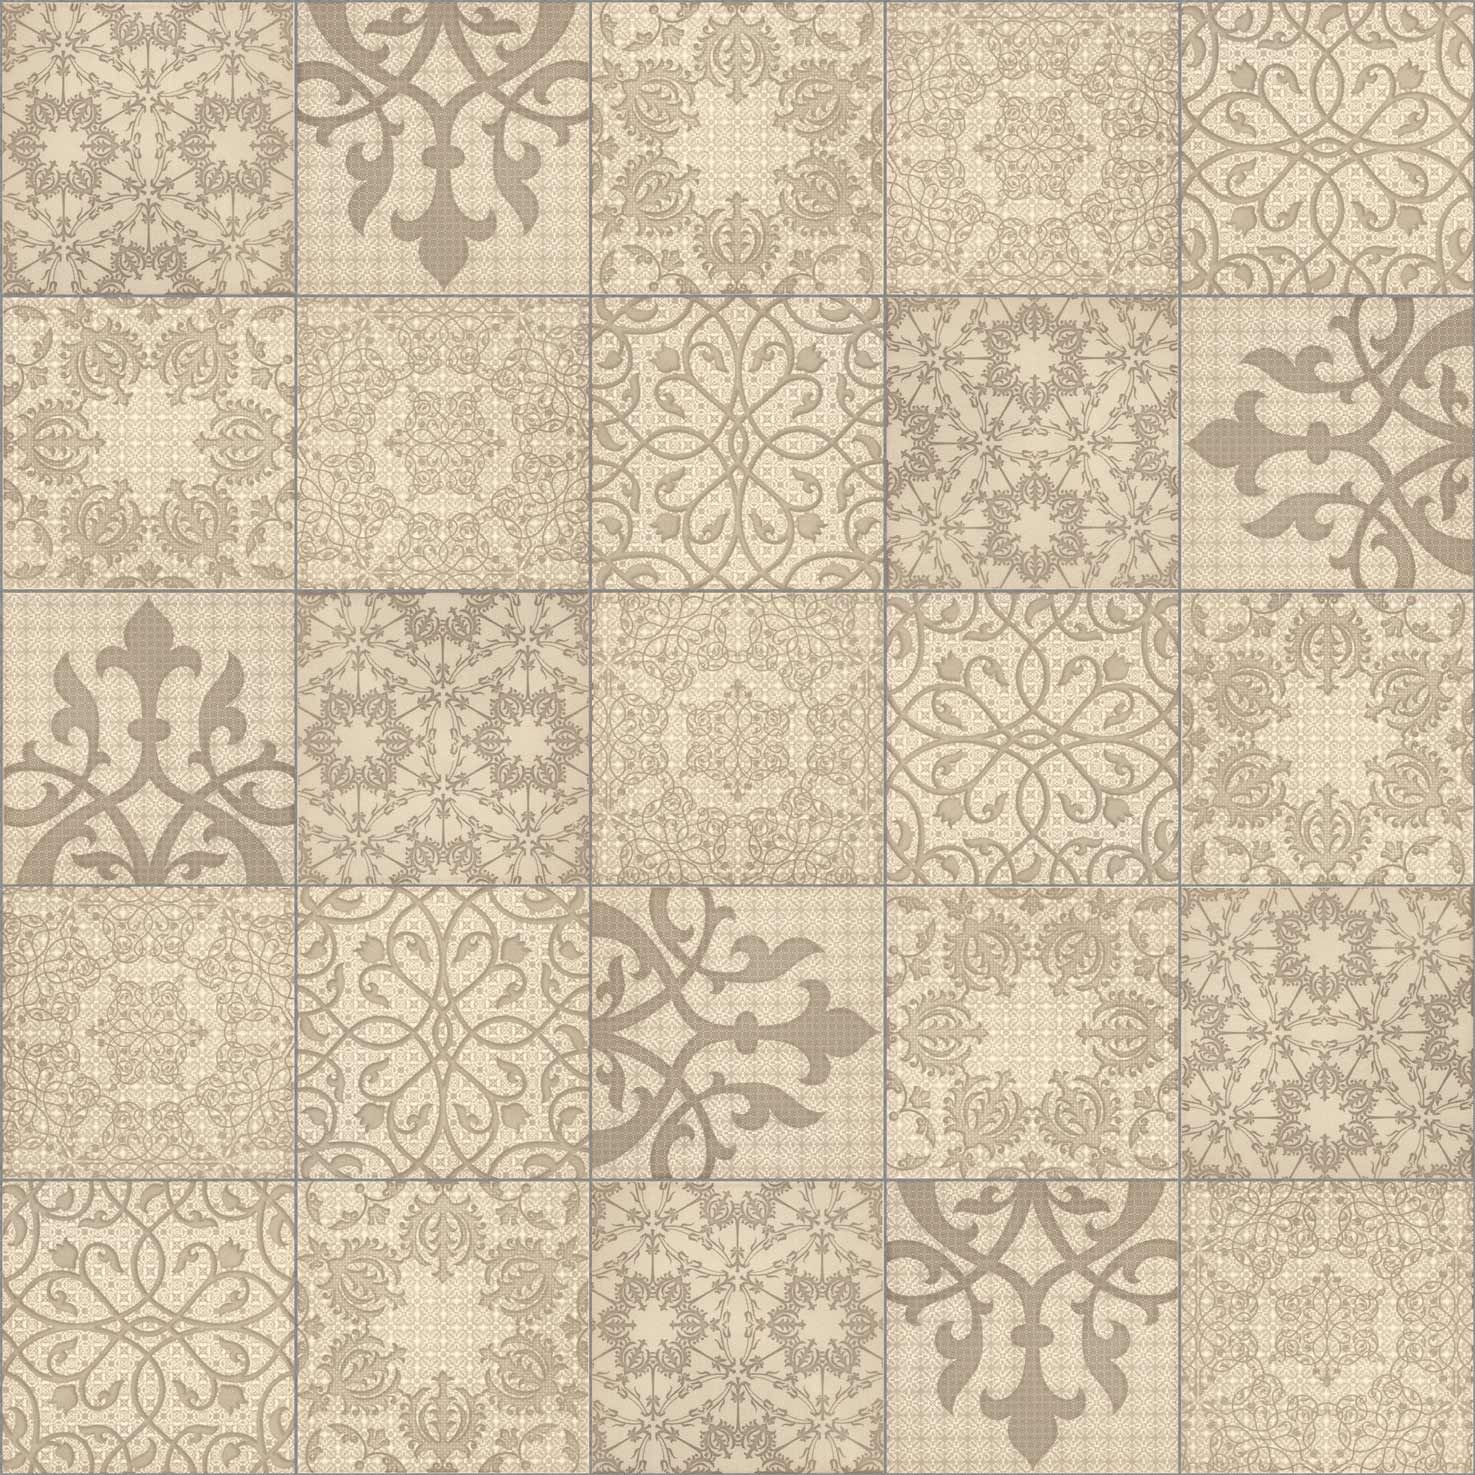 Texture Floor Tiles Wall Tiles Cotto Mosaico Ceramics Porcelain Travertine Desain Interior Desain Interior